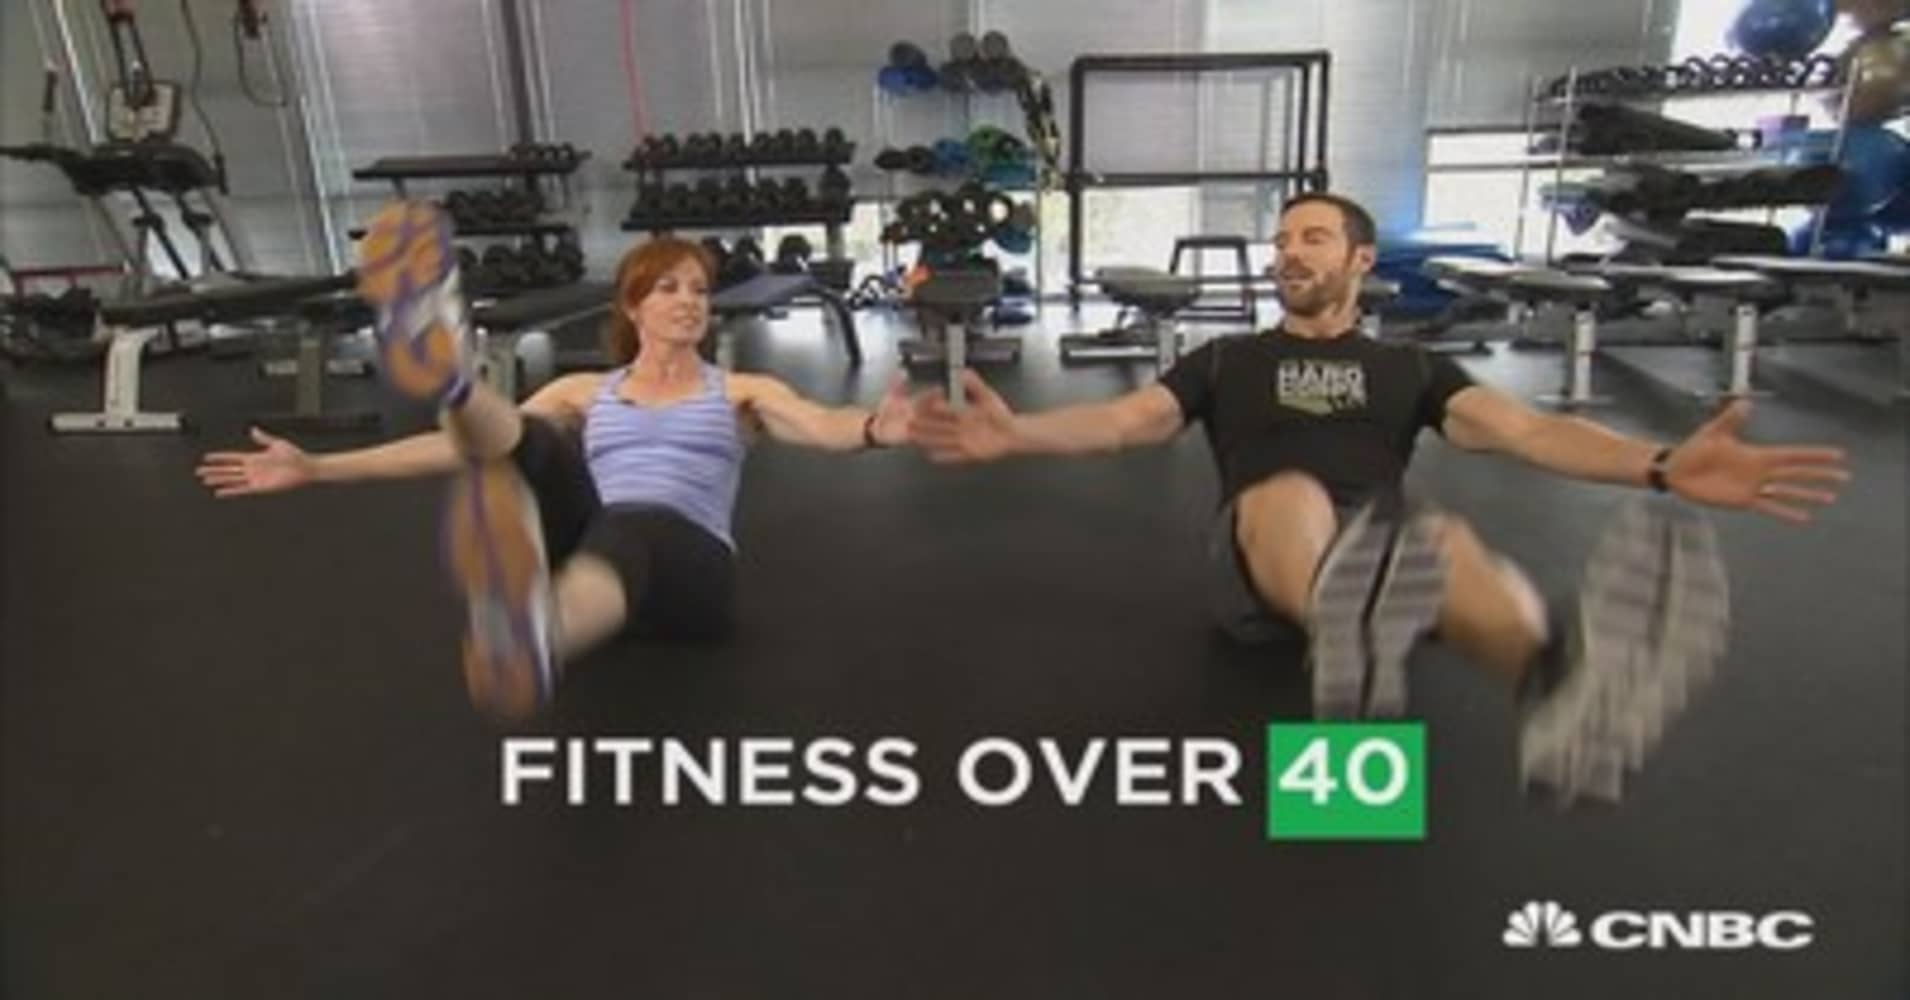 4e7aebcef8 P90X creator on fitness over 40: 'Aging is for idiots'